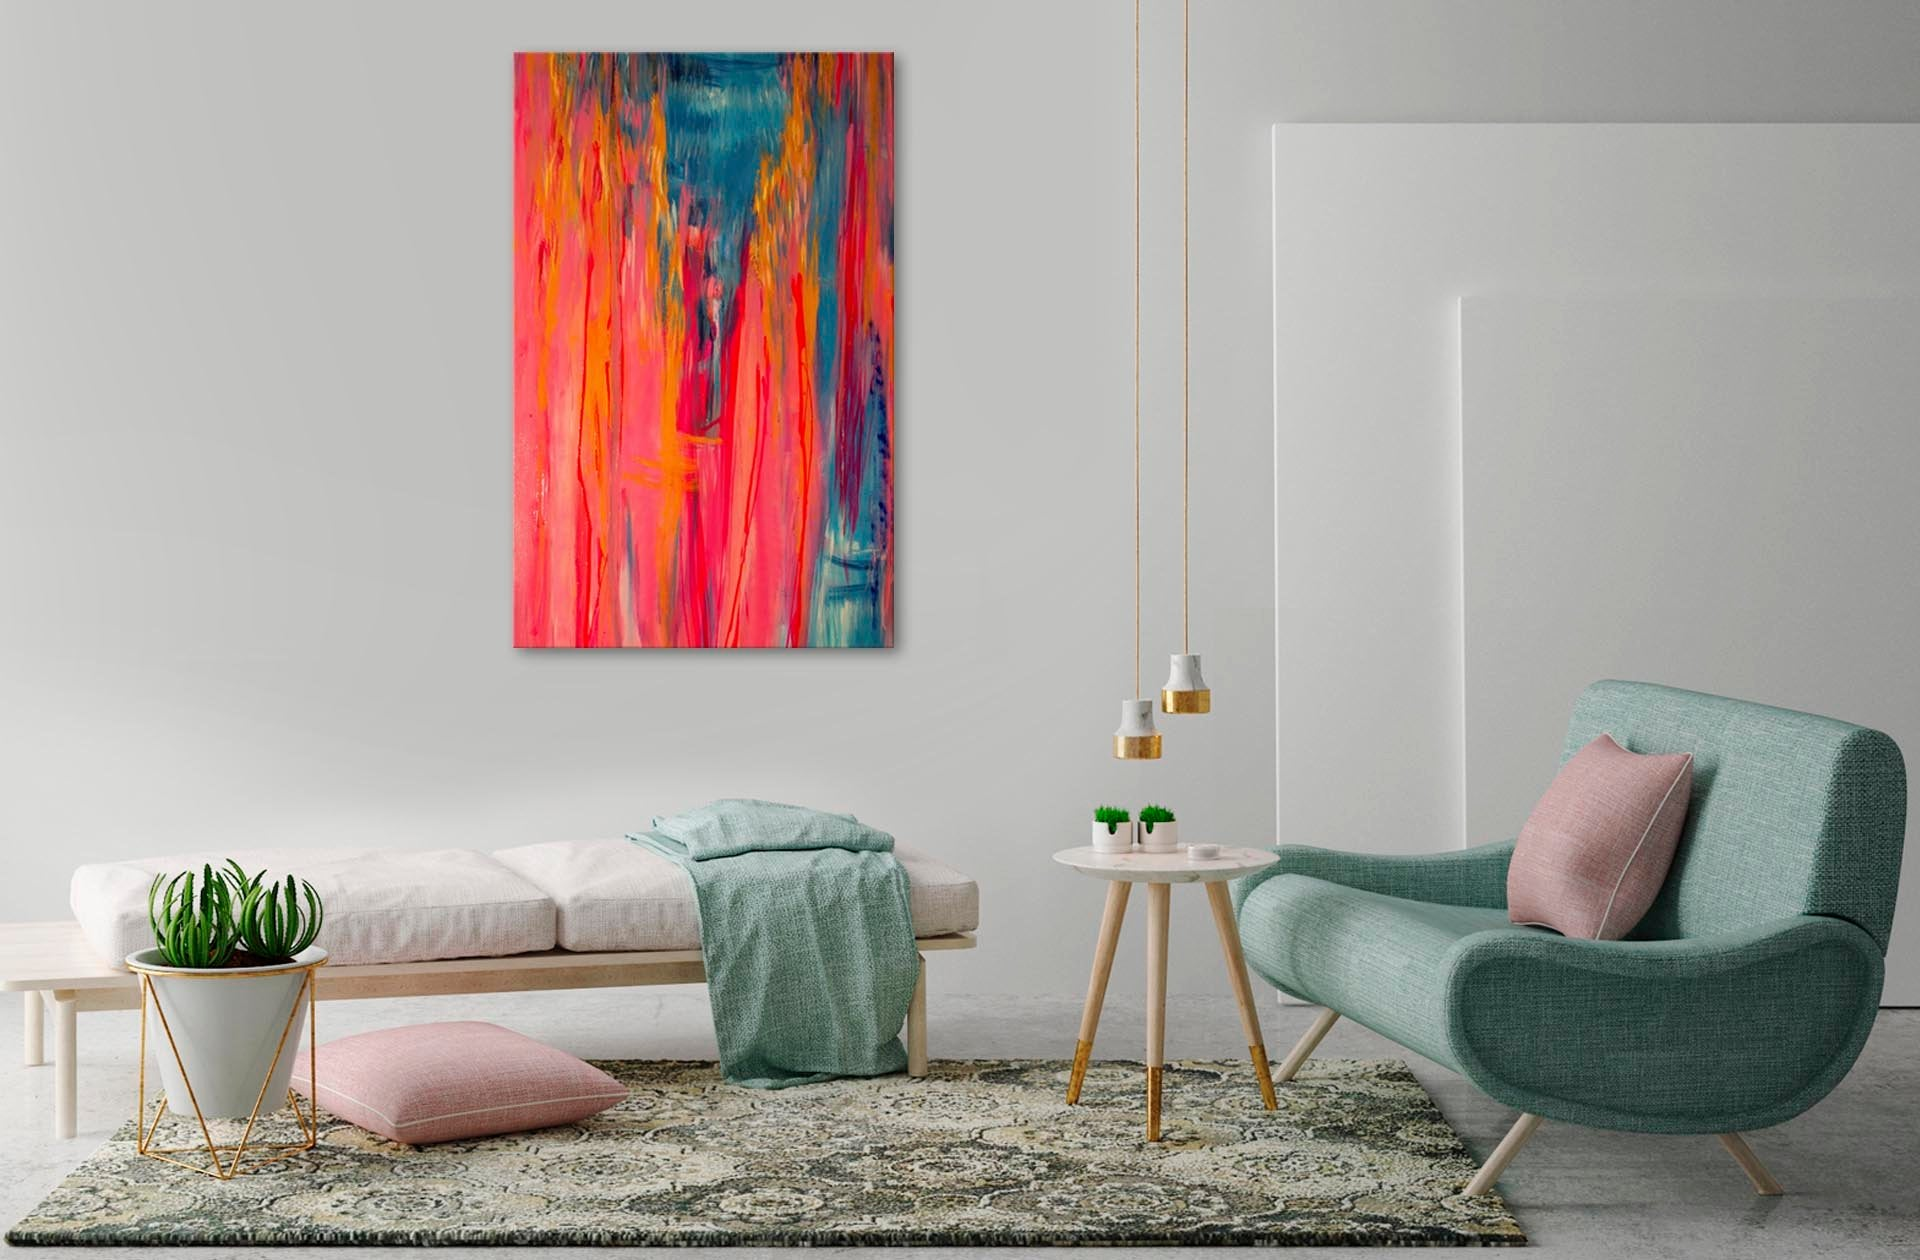 Let us help find art for your home with our free bespoke art visualisation service